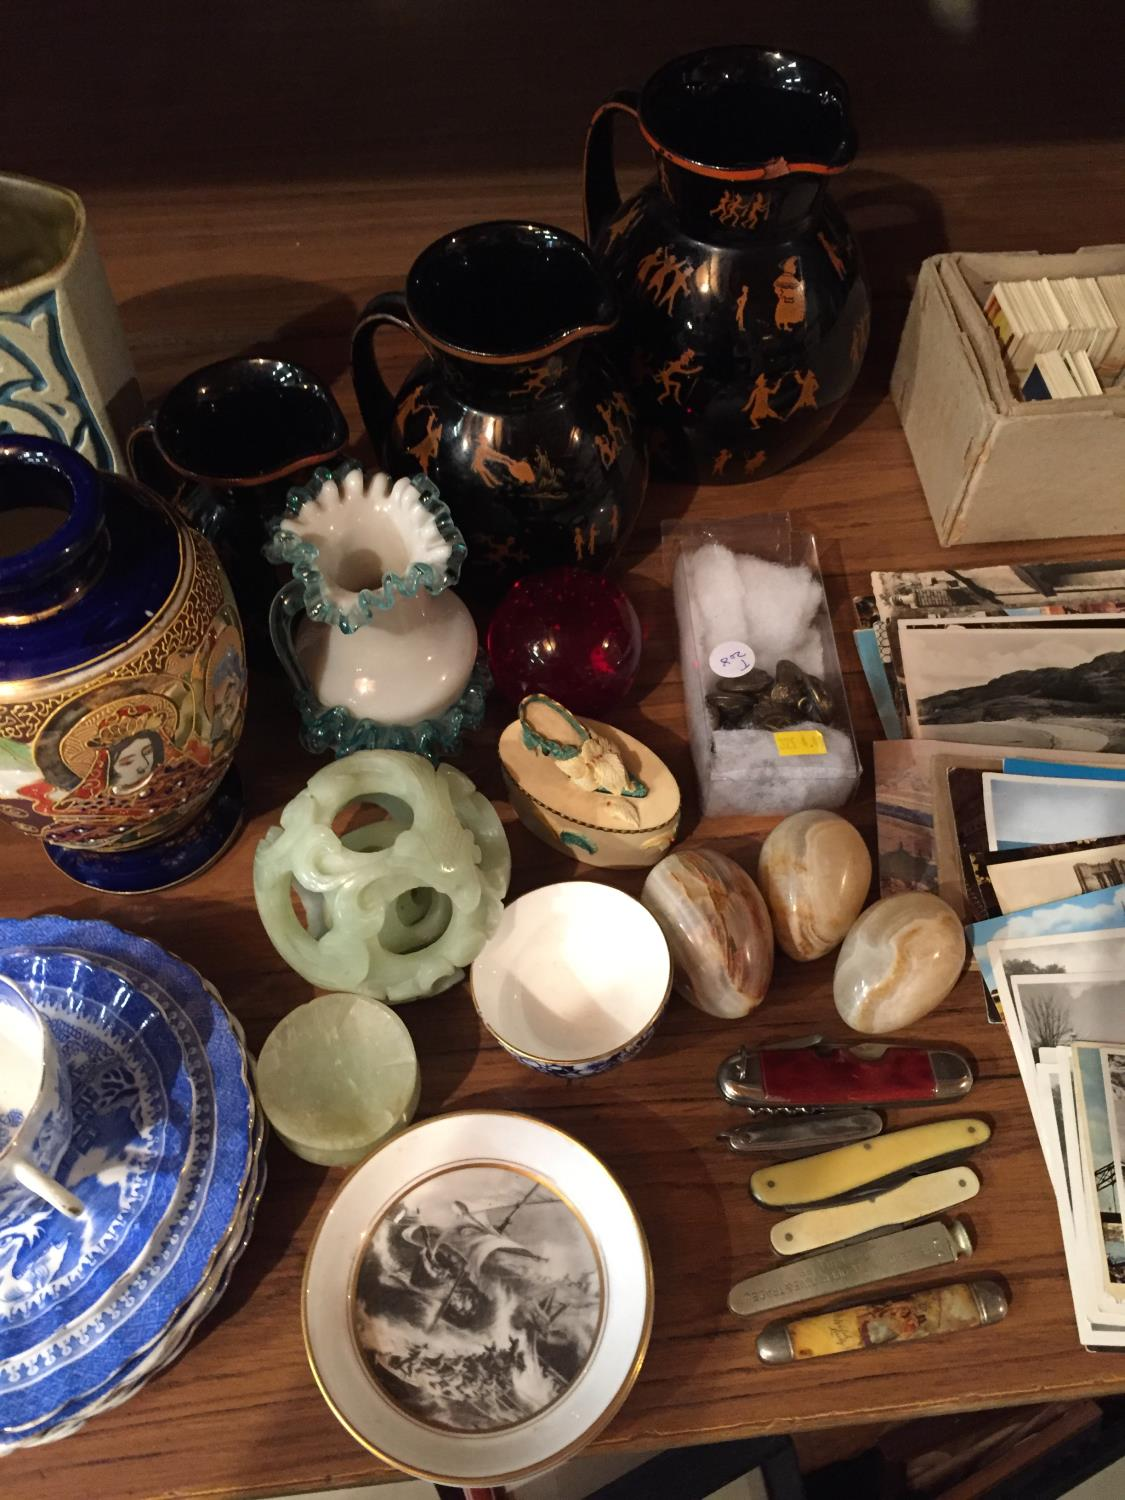 A COLLECTION OF CERAMICS TO INCLUDE BESWICK, WORCESTER PIN TRAYS CIGARETTE CARDS, POSTCARDS ETC - Image 5 of 10